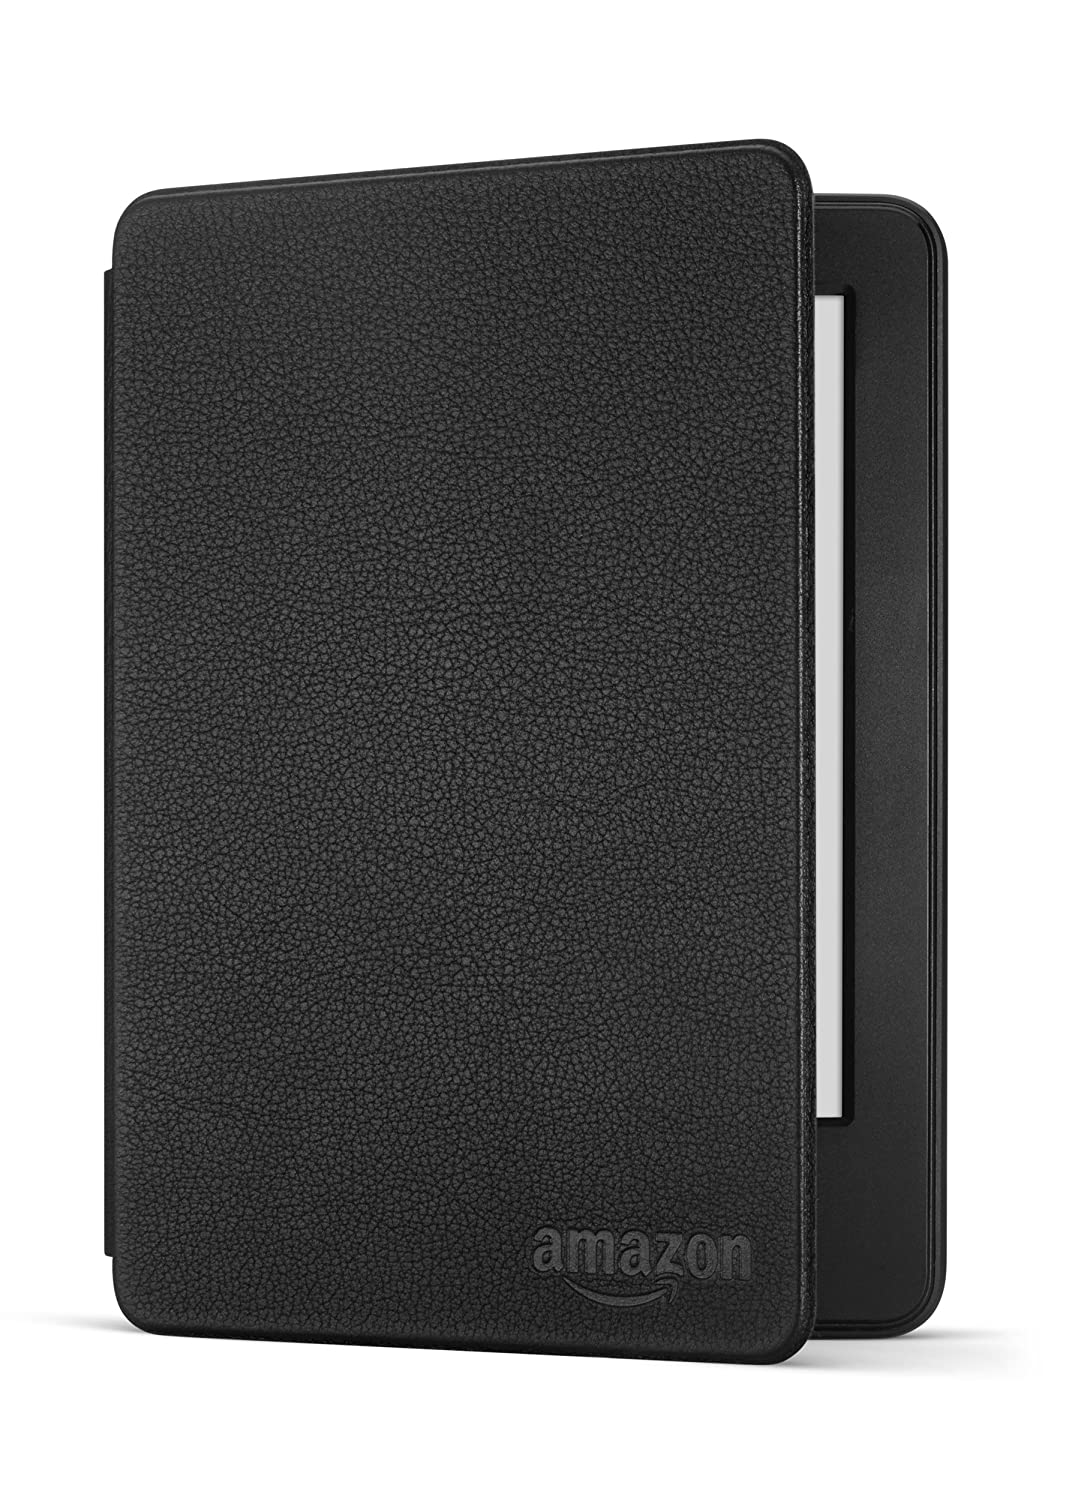 Protective Leather Cover for Kindle (7th Generation), Black - will not fit previous generation Kindle devices